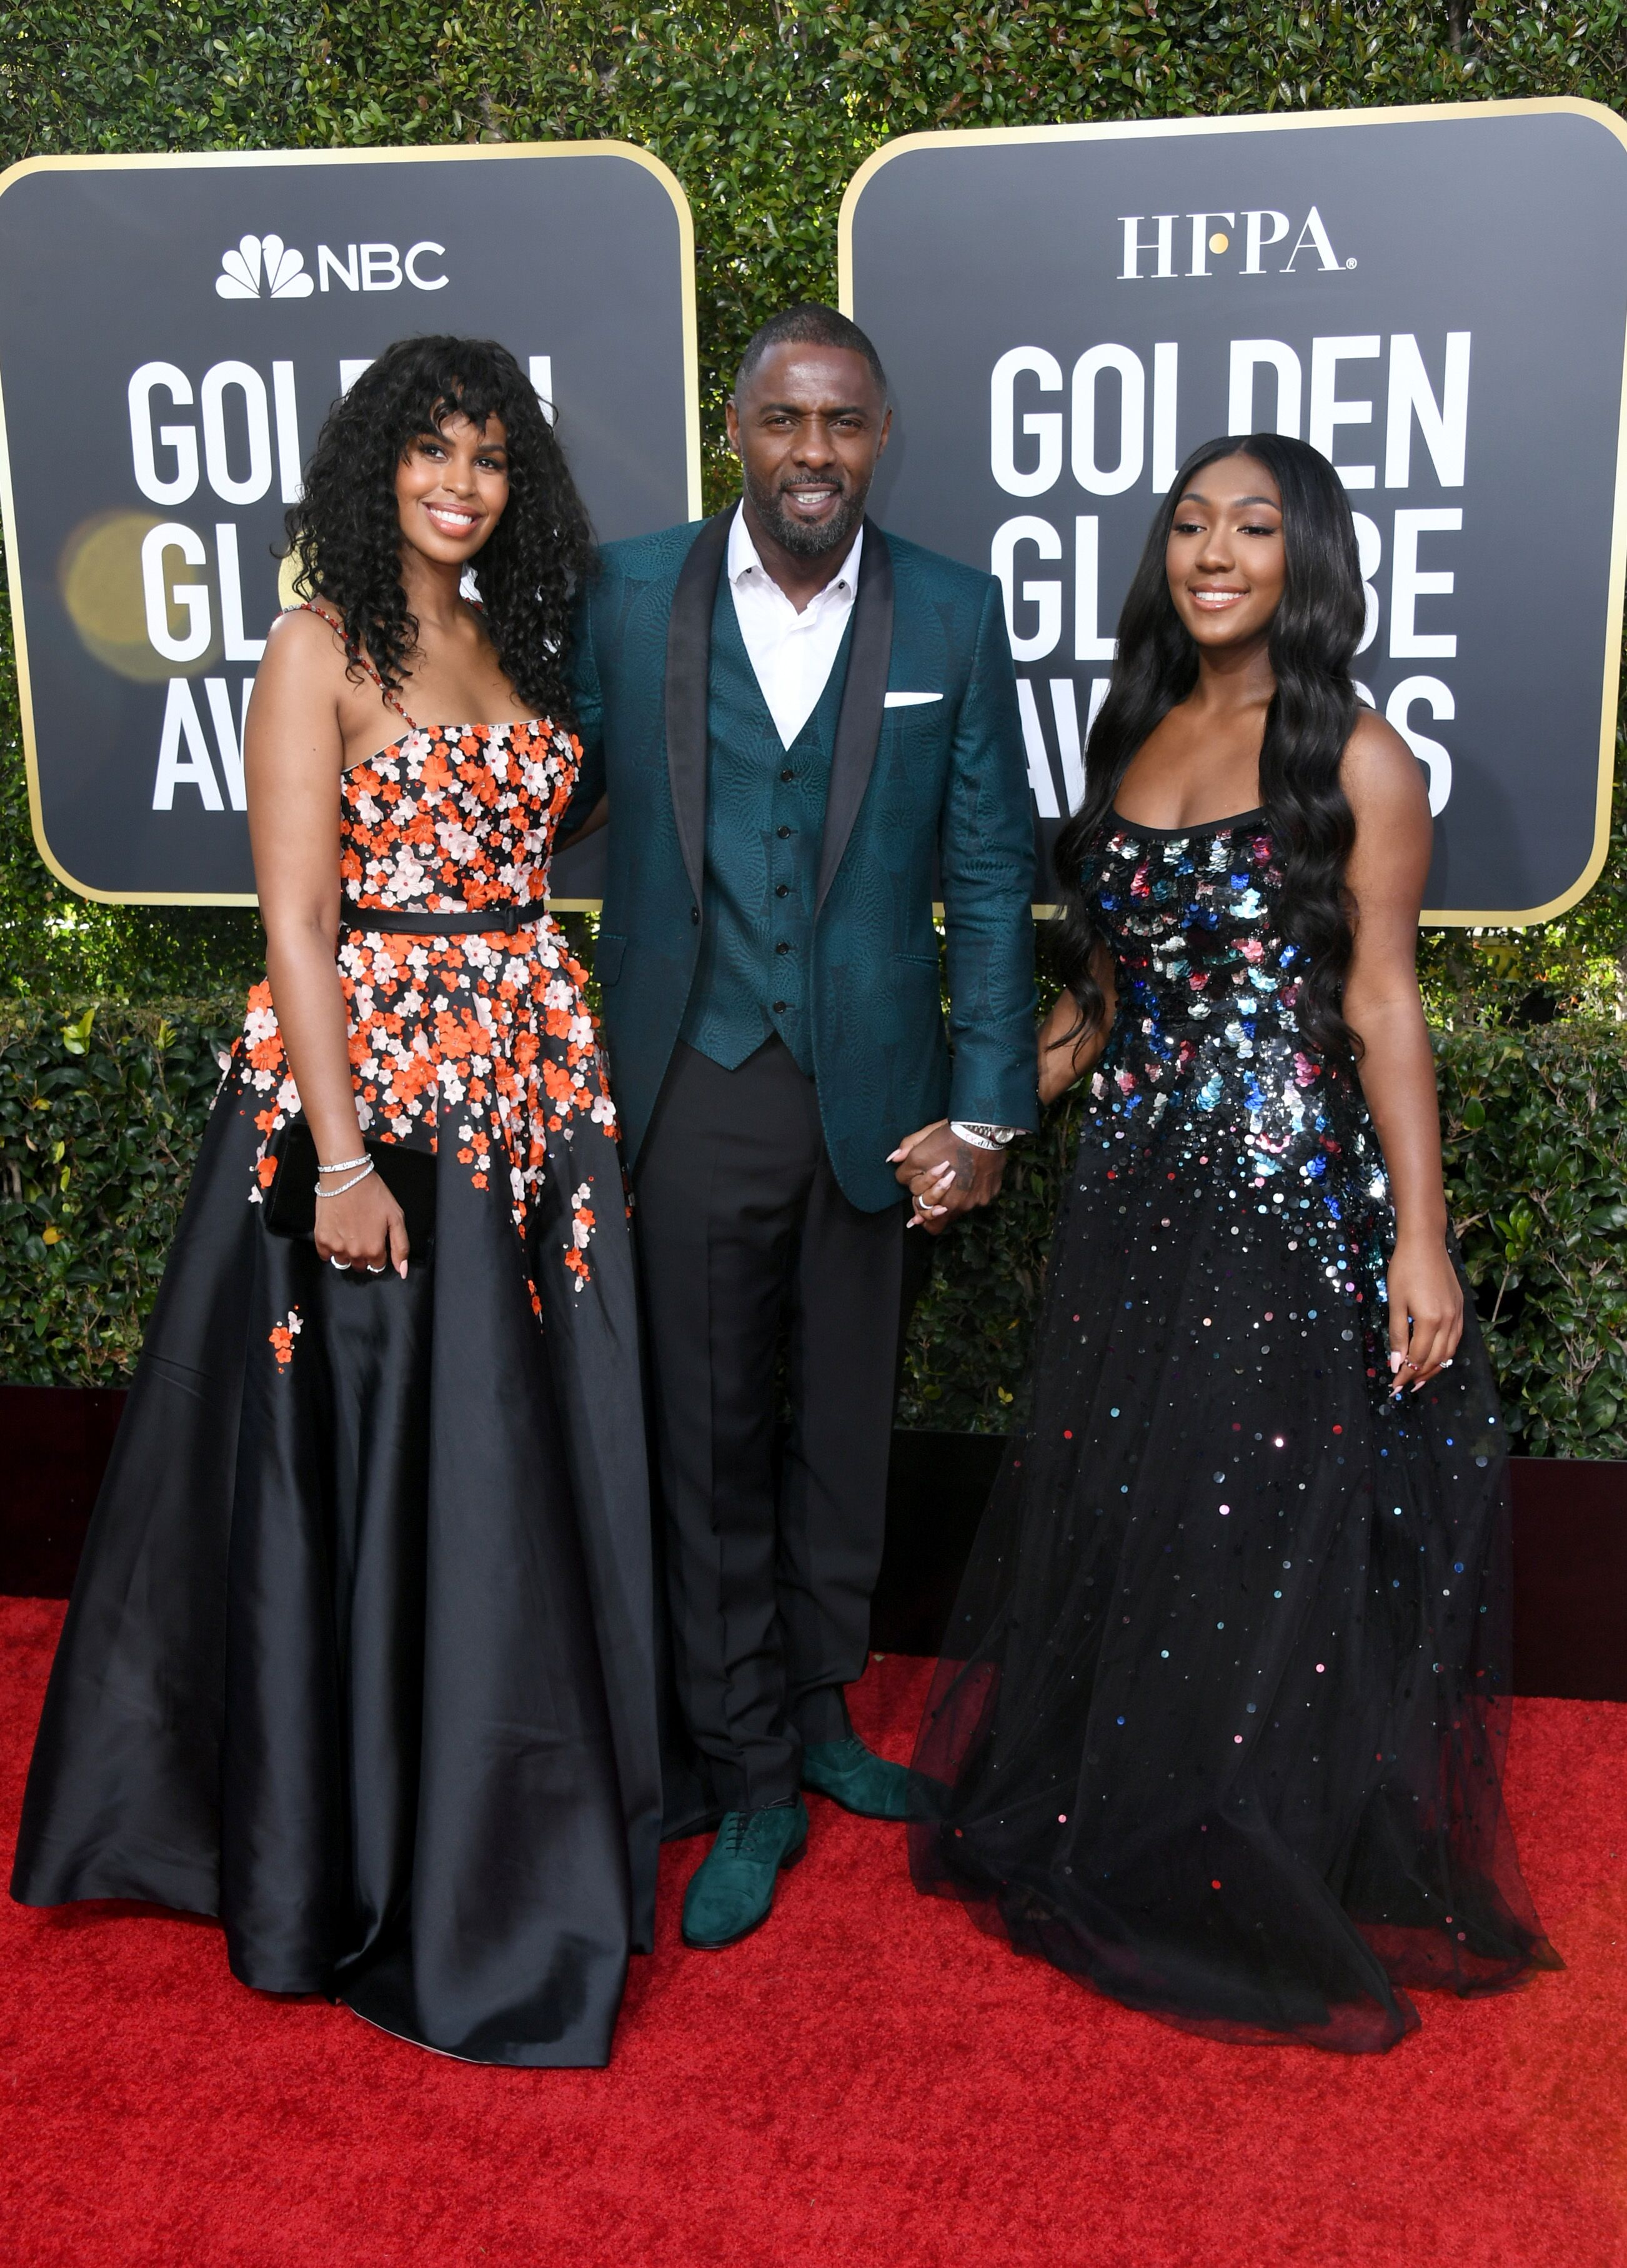 Idris Elba, his wife Sabrina Dhowre, and daughter Isan Elba at the 2019 Golden Globe Awards/ Source: Getty Images